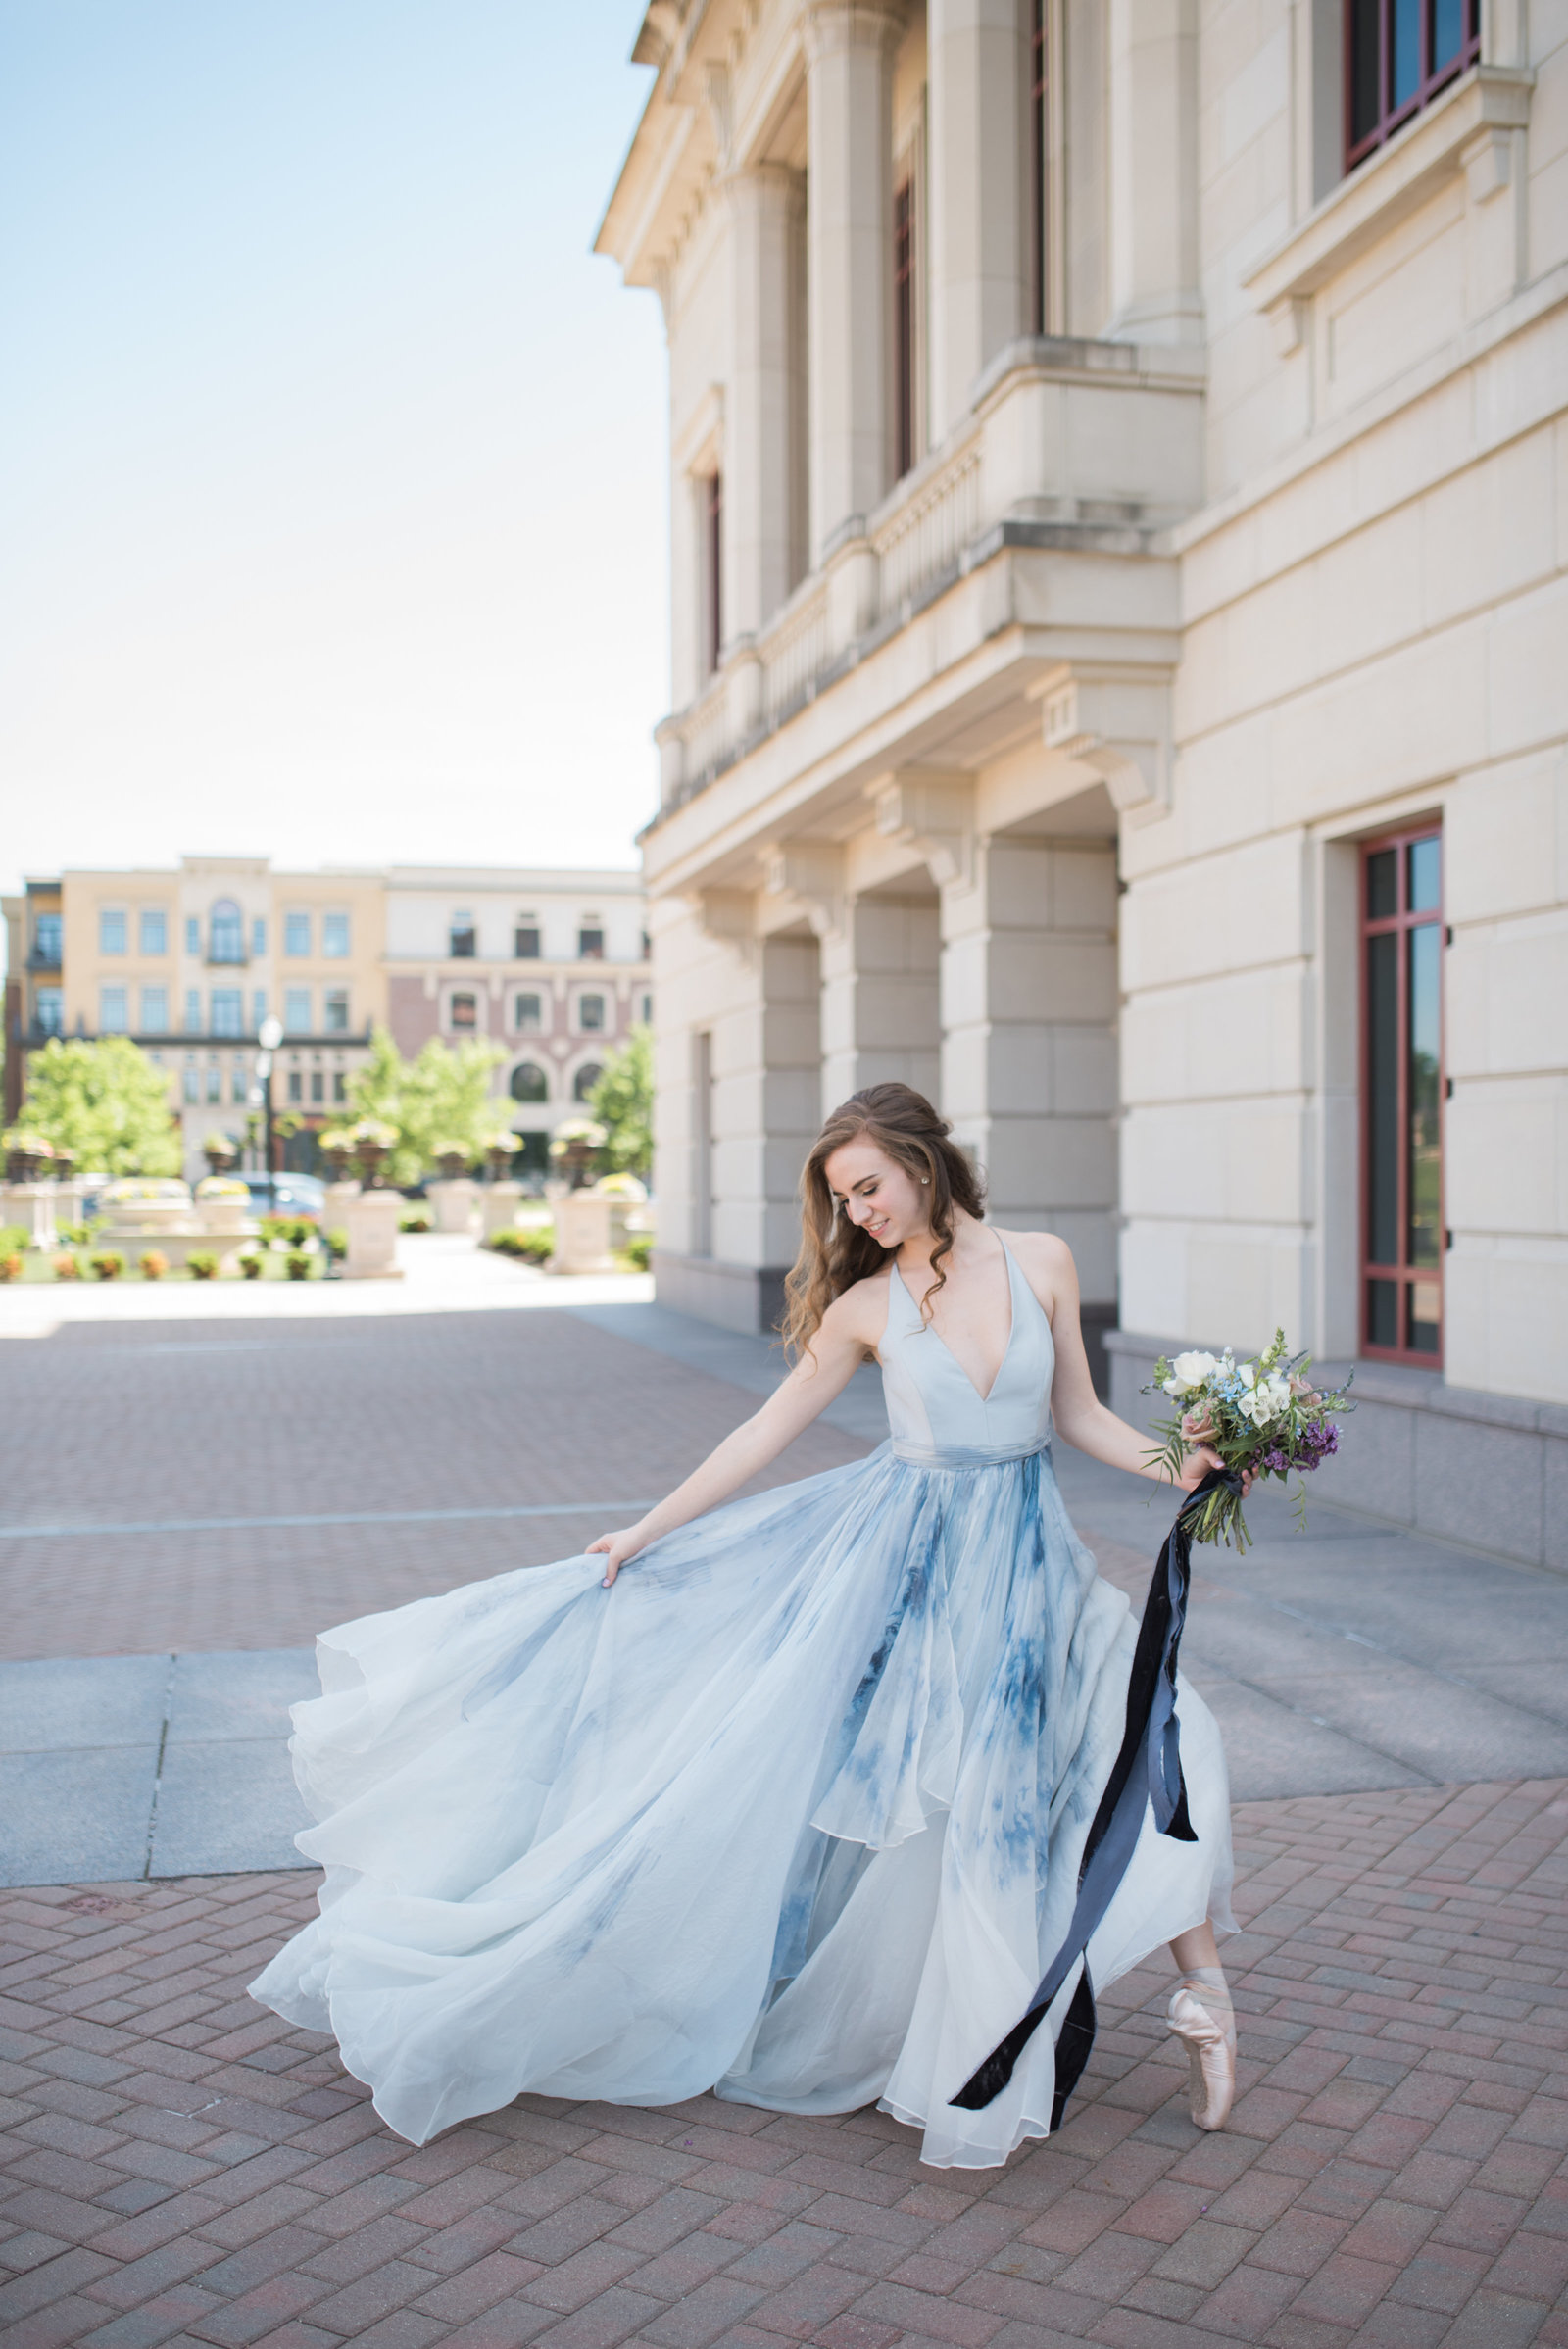 Ballet Inspired Engagement Session at the Palladium in Carmel Indiana (65 of 129)